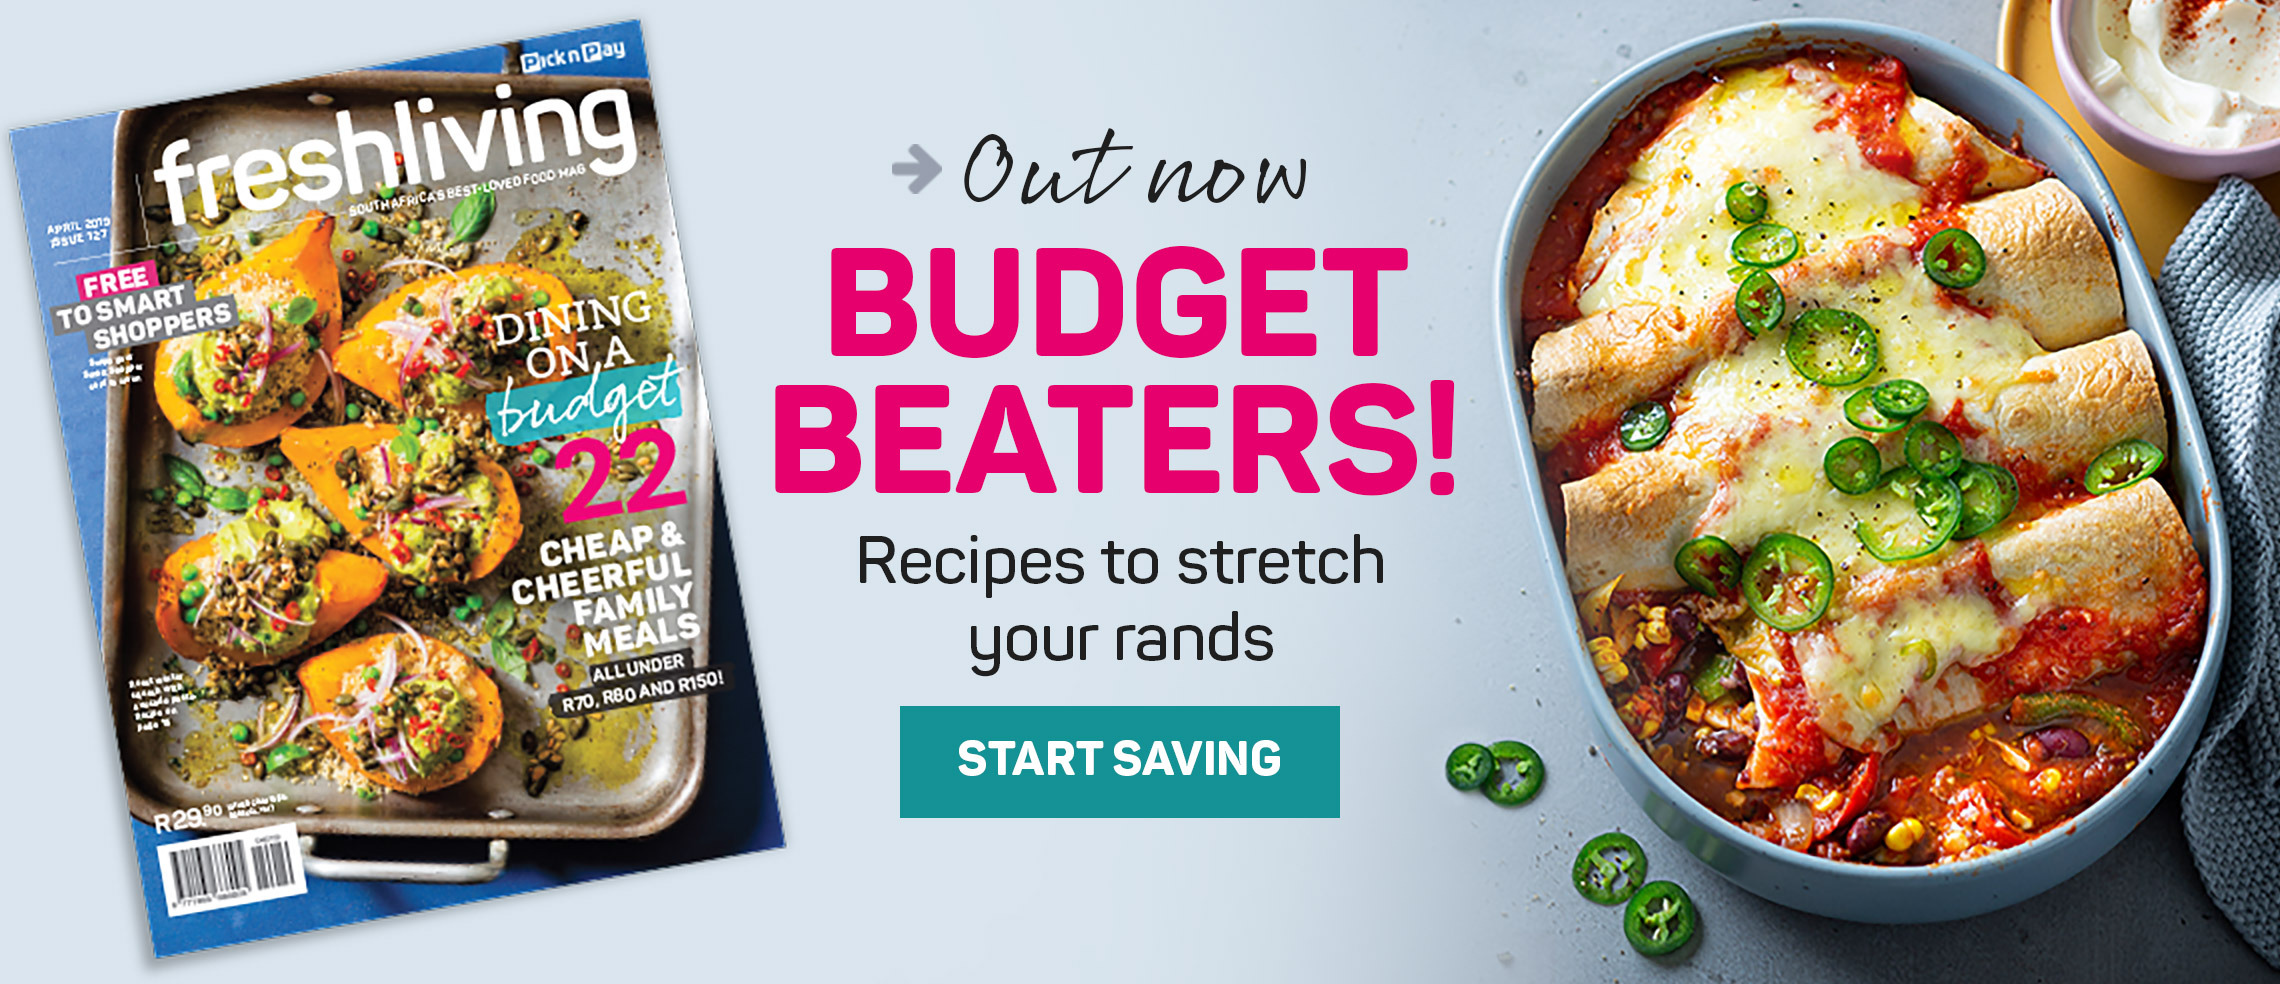 Out now. Budget beaters. Recipes to stretch your rands. Start saving